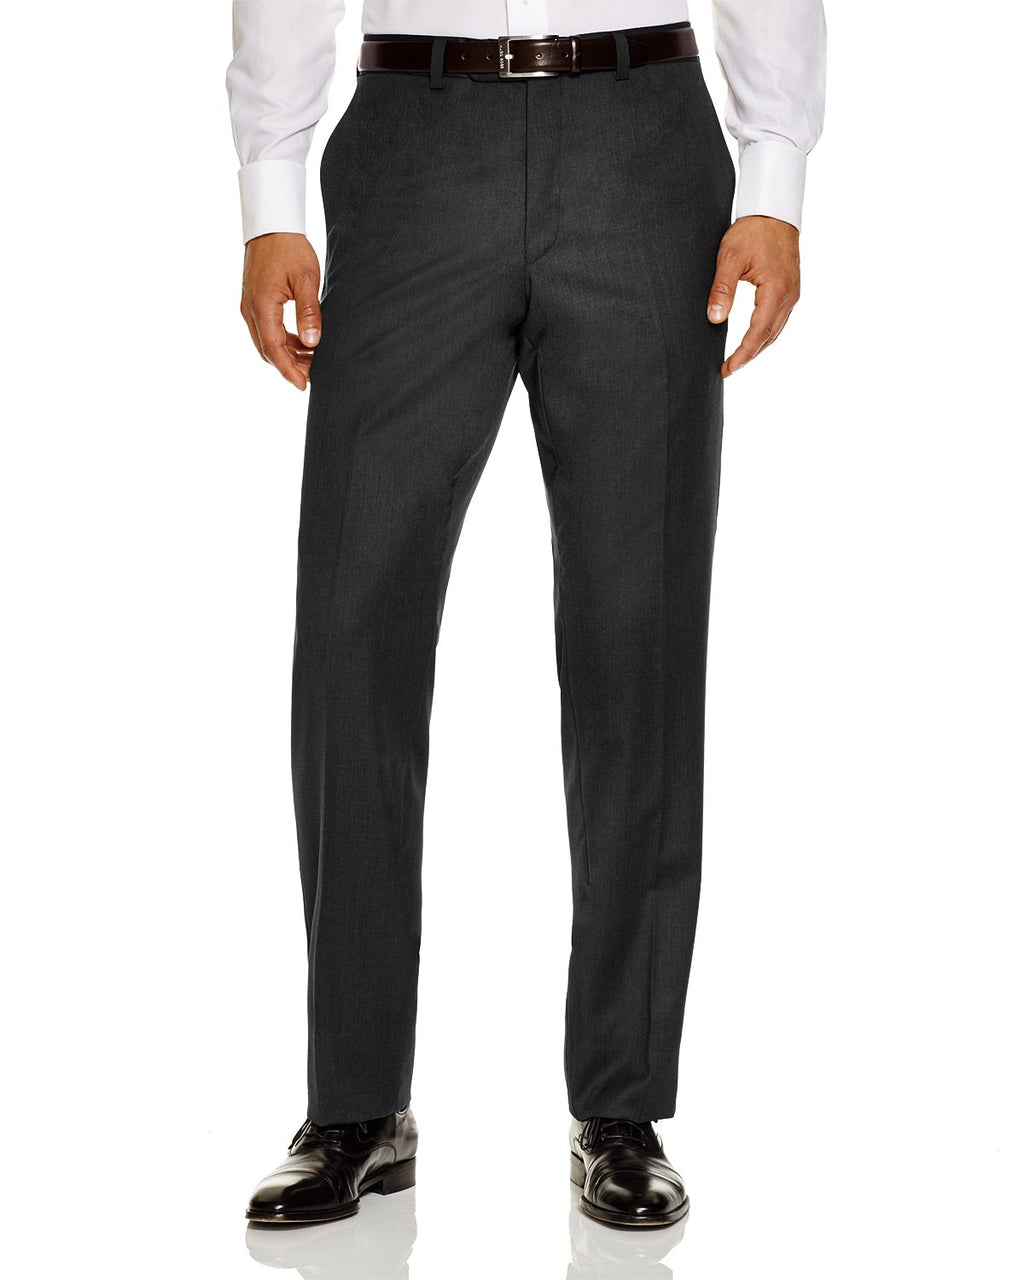 KOLT • Charcoal Grey • Modern Fit Trouser • Loro Piana •